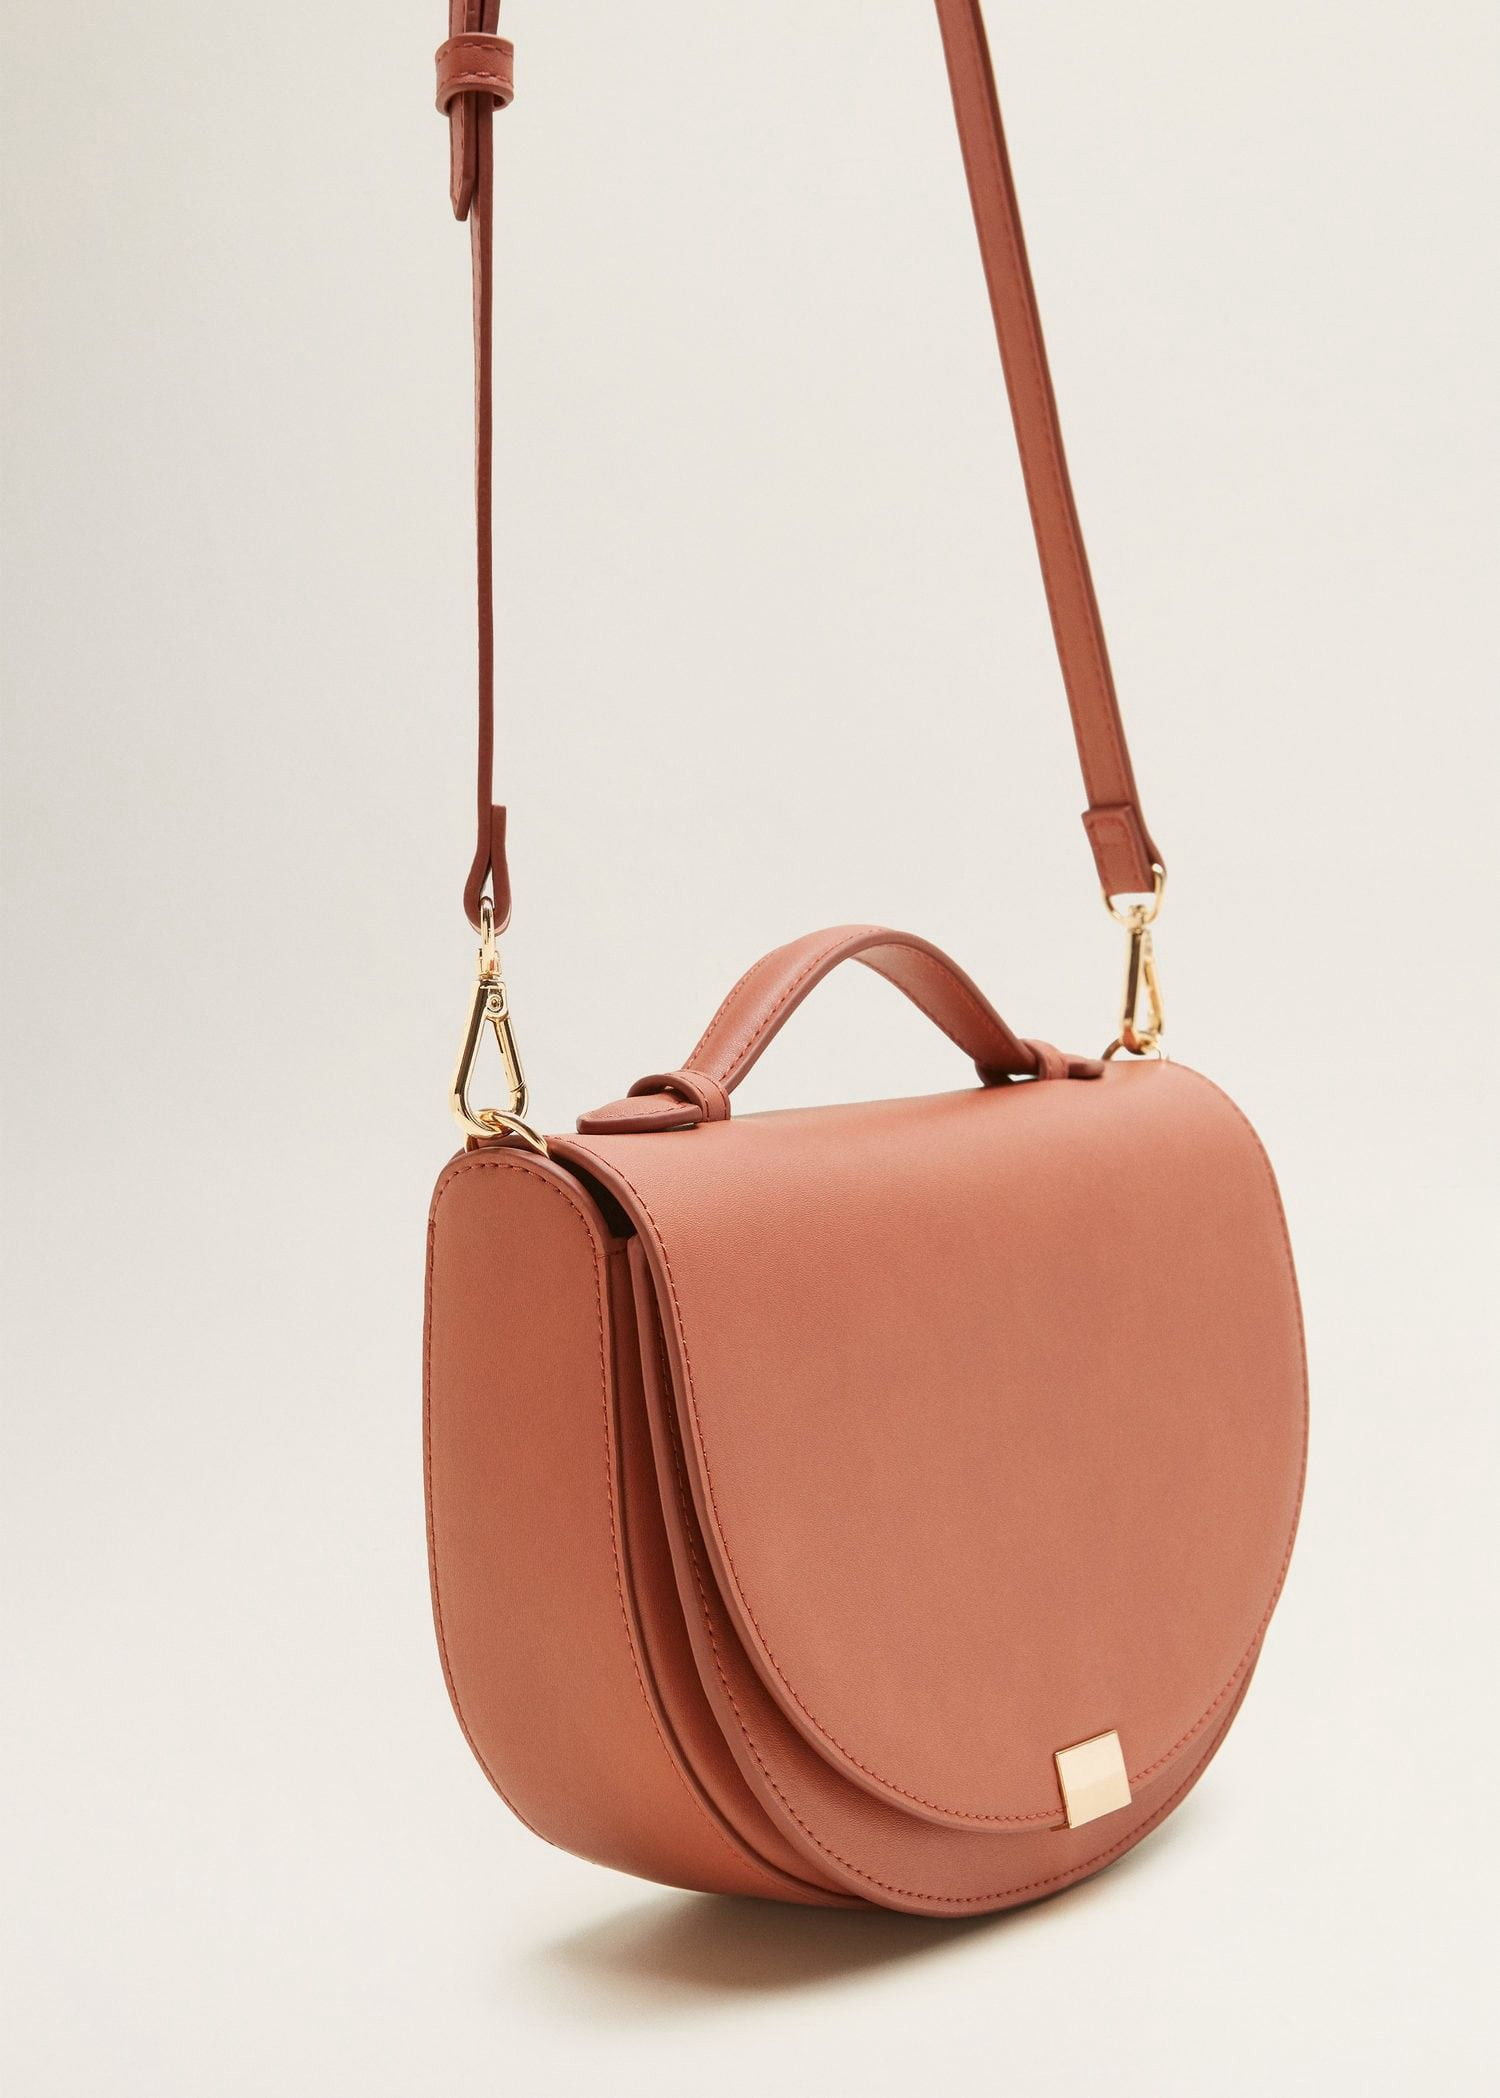 668e2c90f95e Mango Flap Cross-Body Bag - Pink One Size | Products in 2019 | Bags ...